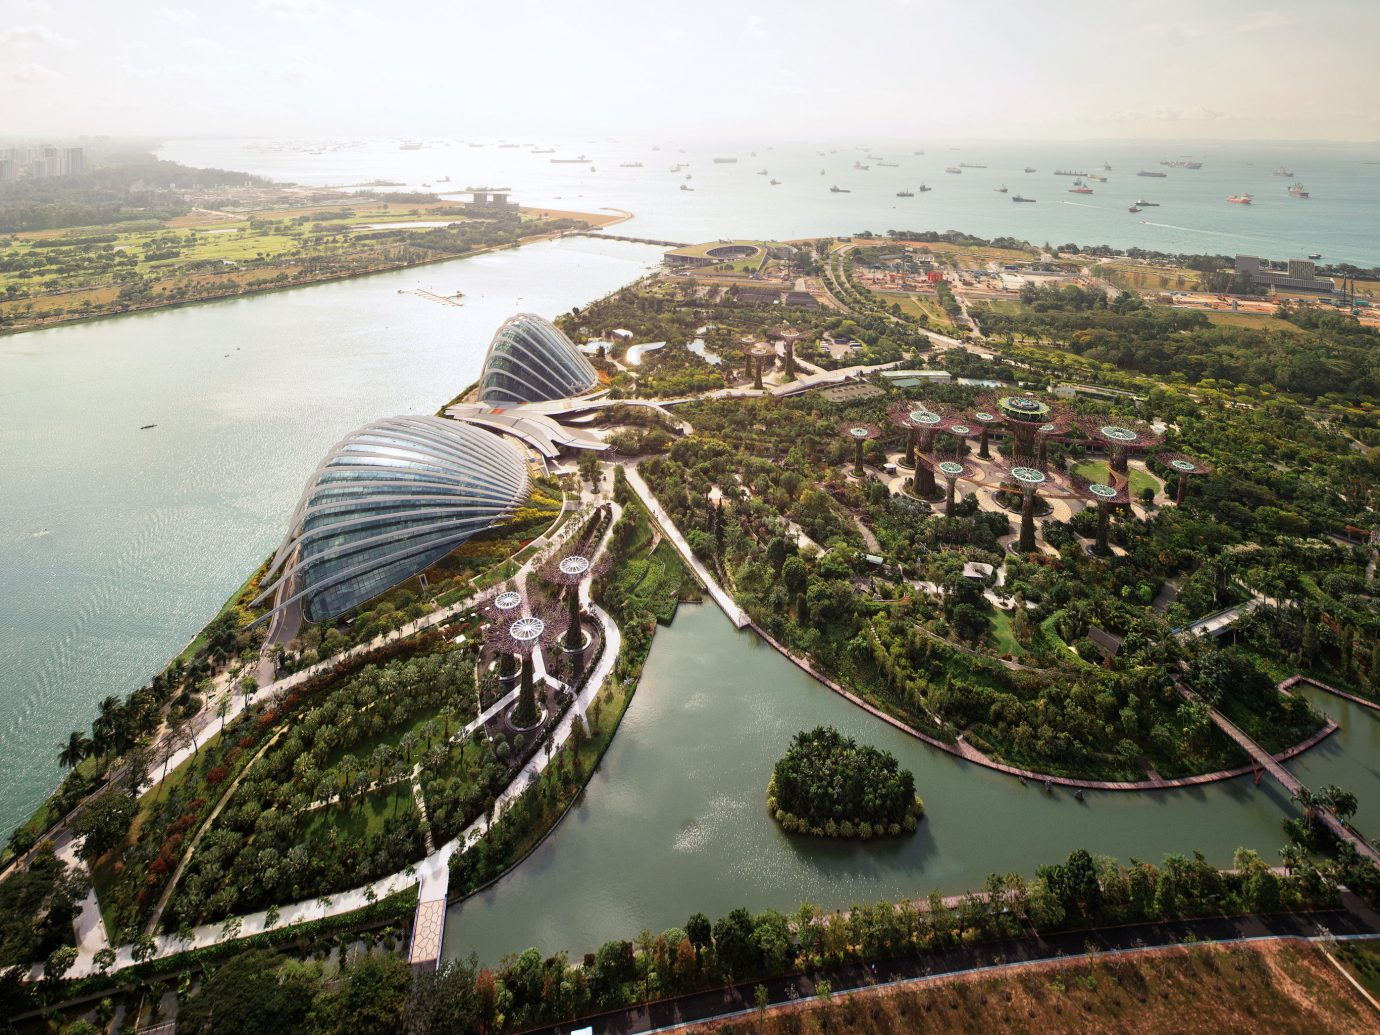 Arts + Culture Singapore Southeast Asia Trip Ideas sky water outdoor aerial photography bird's eye view Nature Coast Lake Sea River tourism bay reservoir overlooking shore surrounded